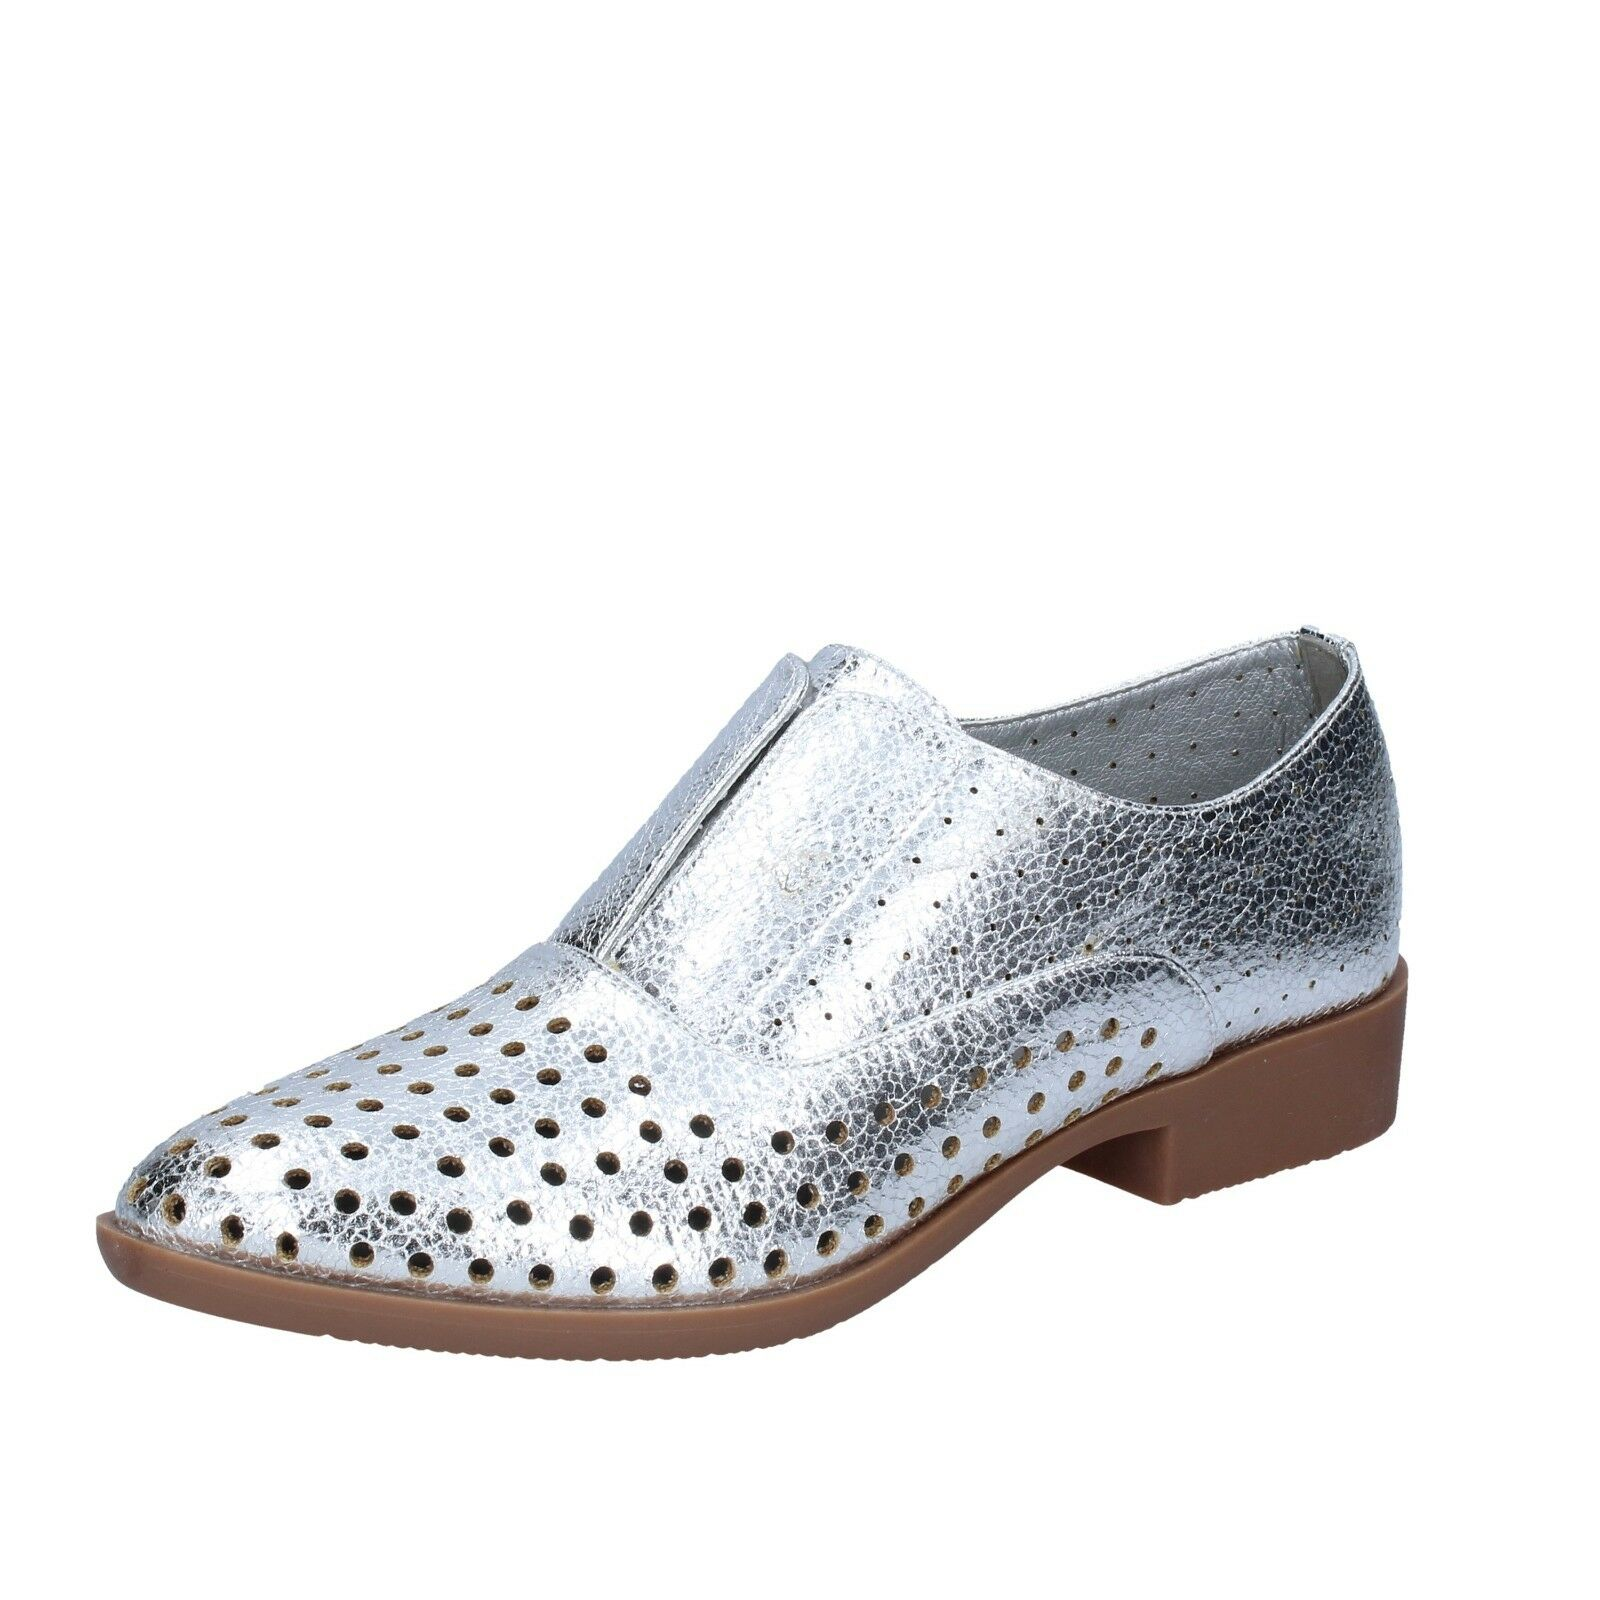 Womens shoes FRANCESCO MILANO 5 (EU (EU (EU 38) elegant silver leather BS73-38 b6b833